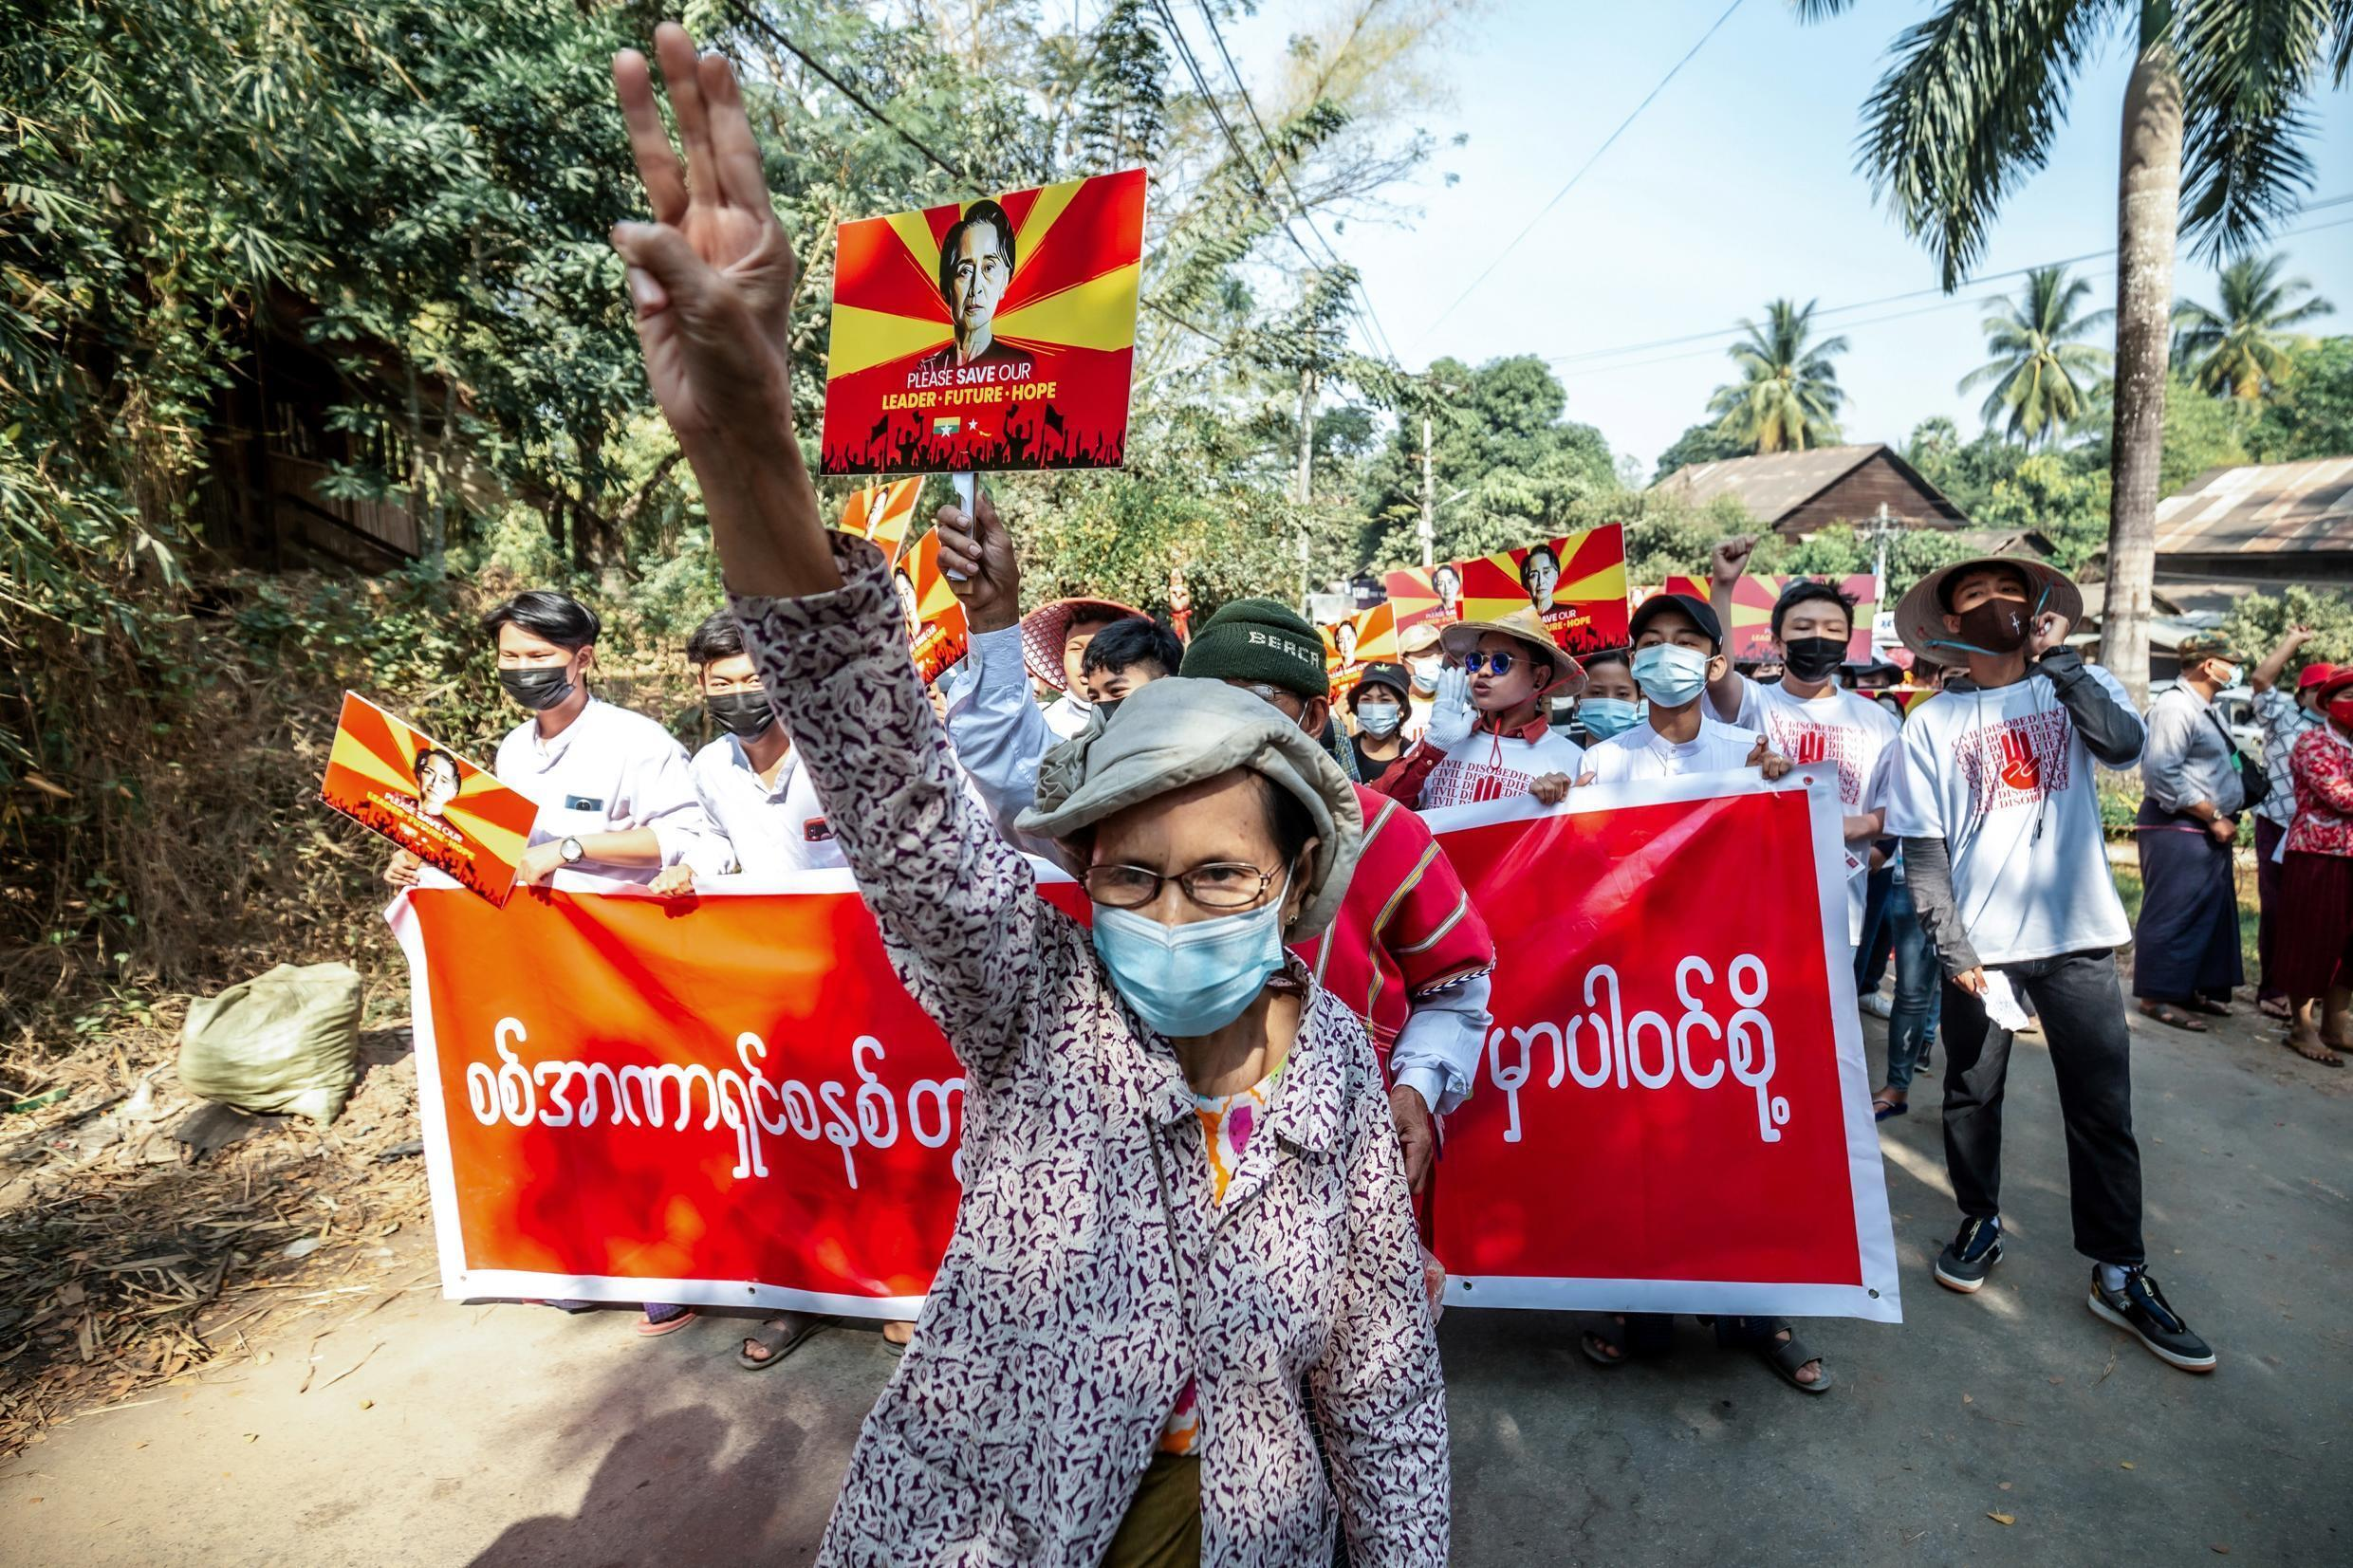 Thousands gathered across Myanmar to protest against the military coup